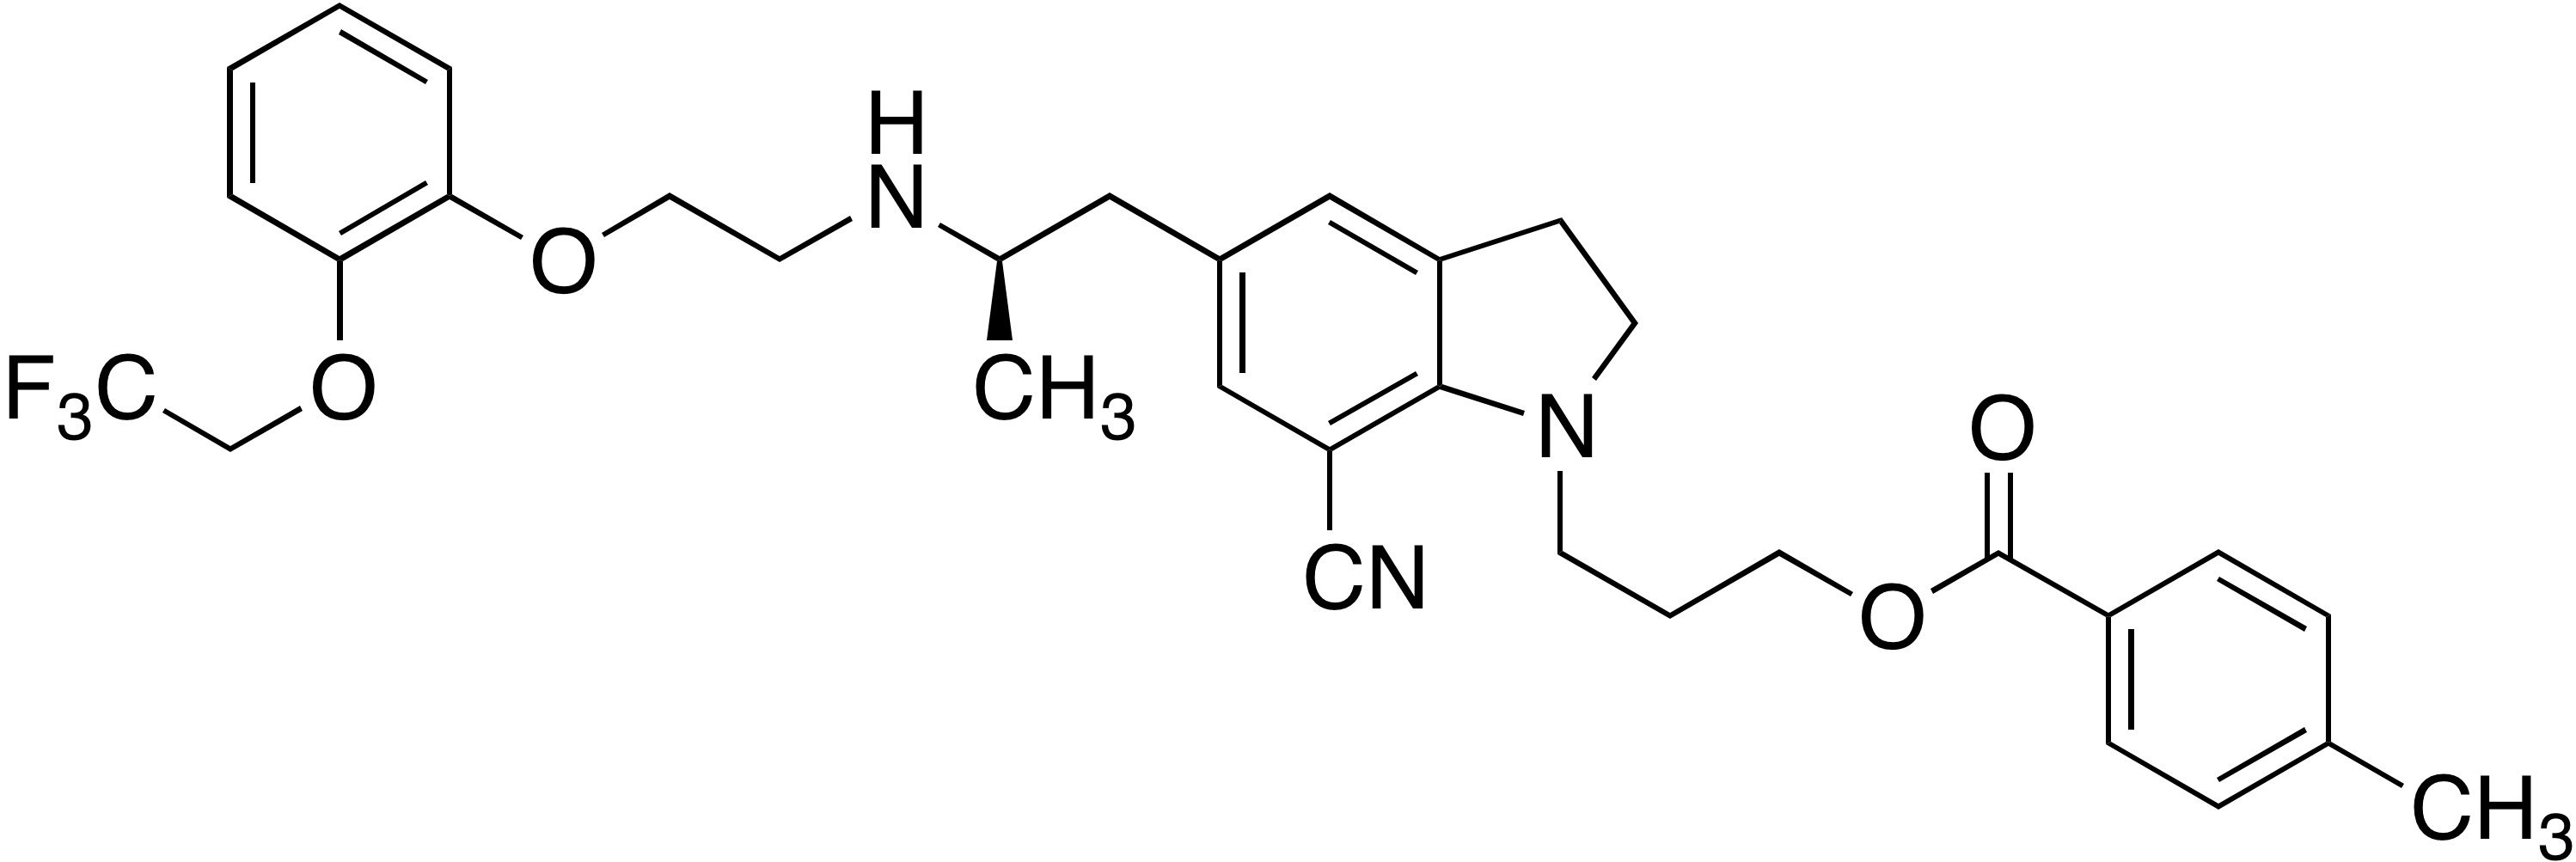 Silodosin impurity 8